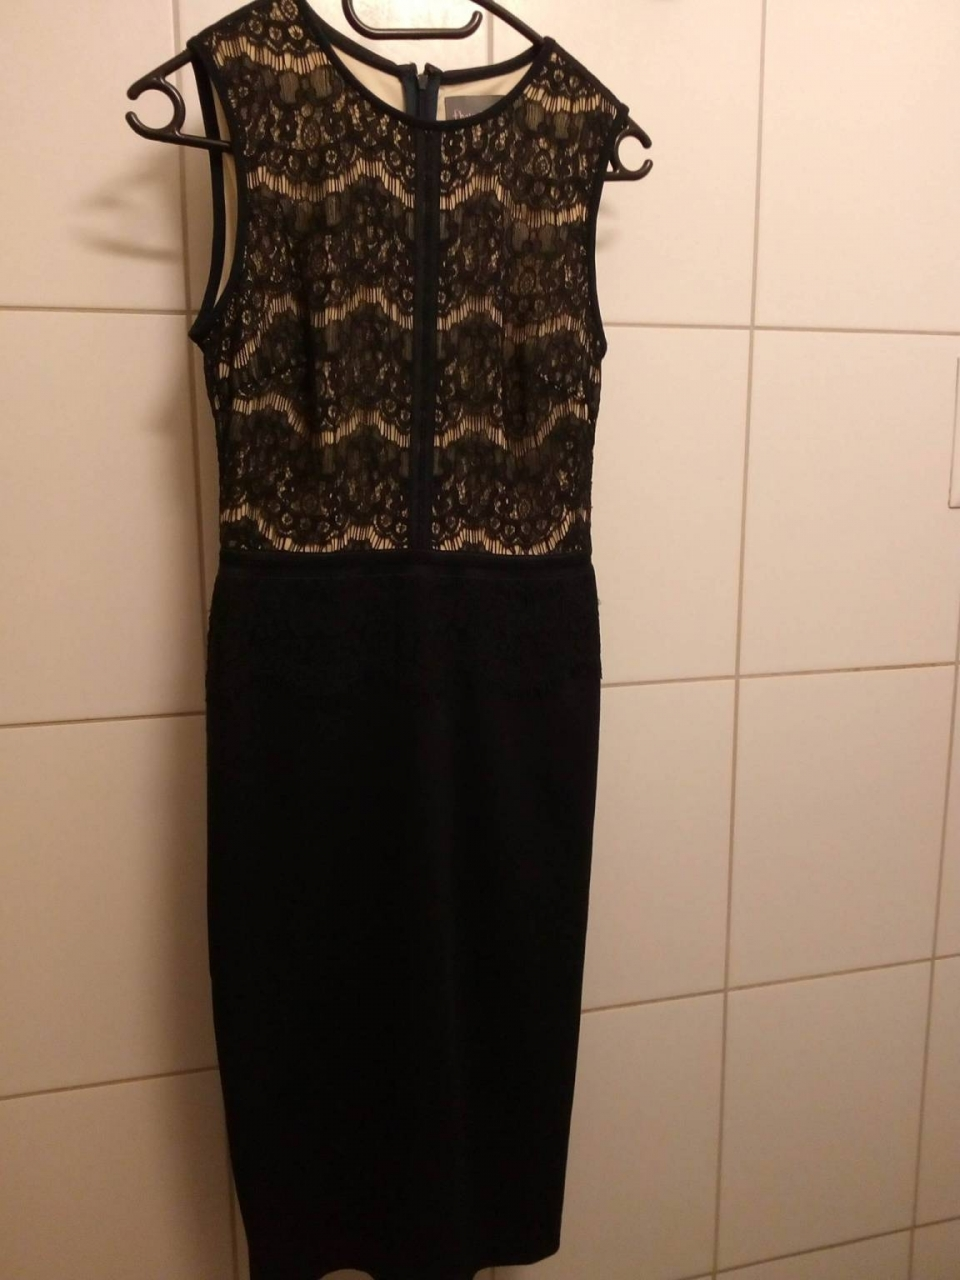 Robes-Robe-taille-8,-comme-du-s,-36